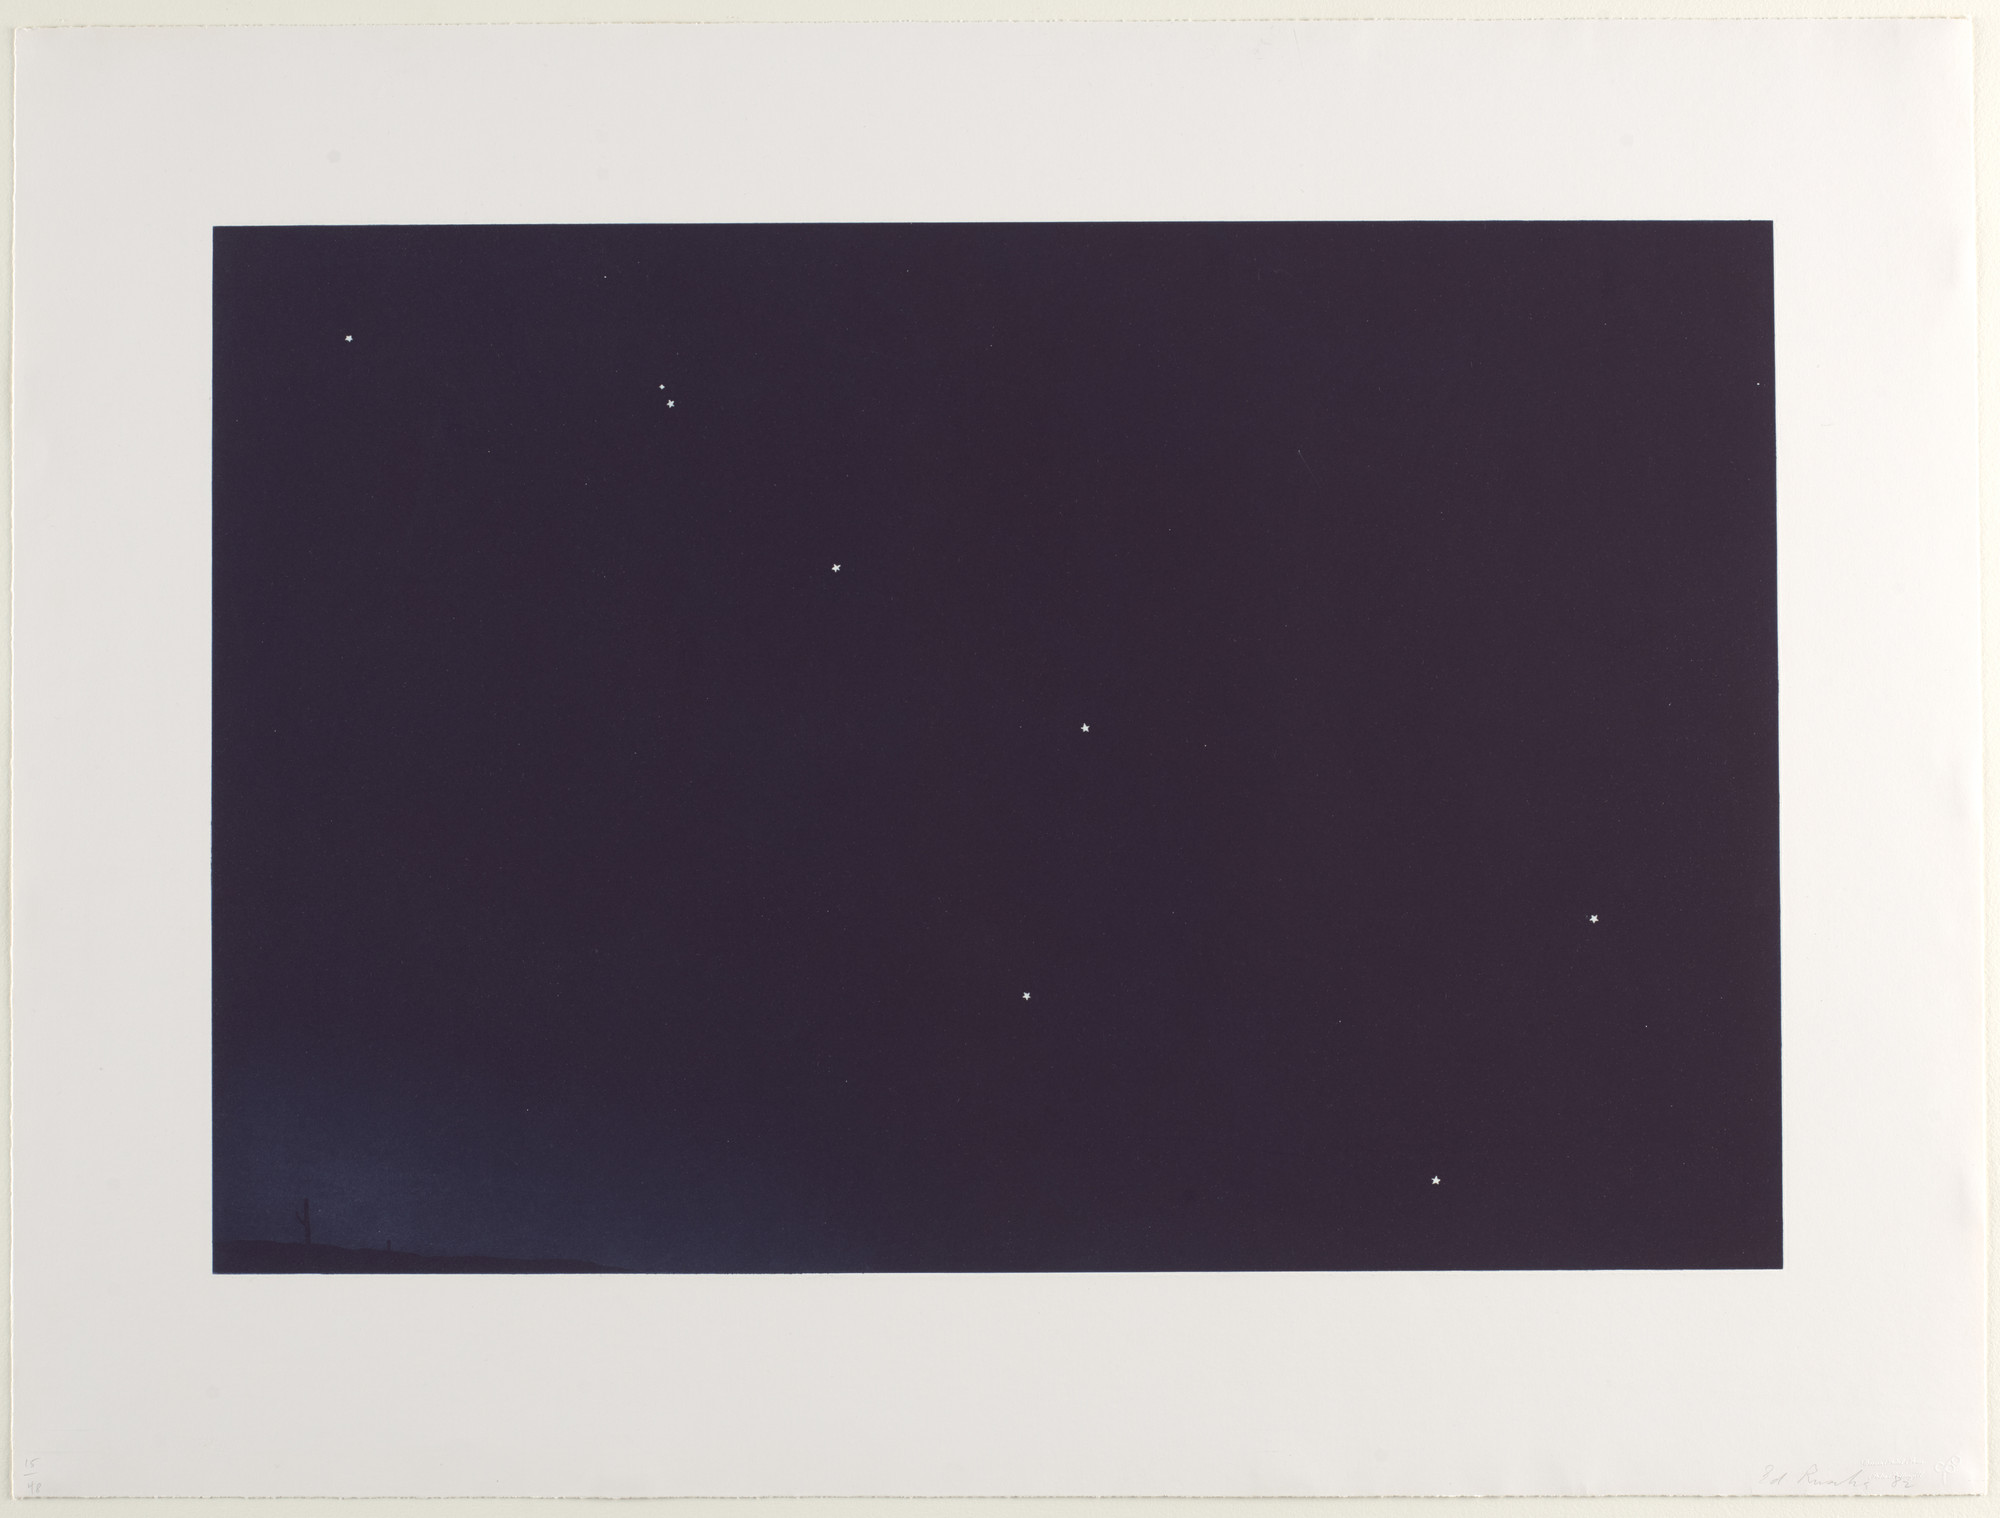 Edward Ruscha. Big Dipper Over Desert. 1982